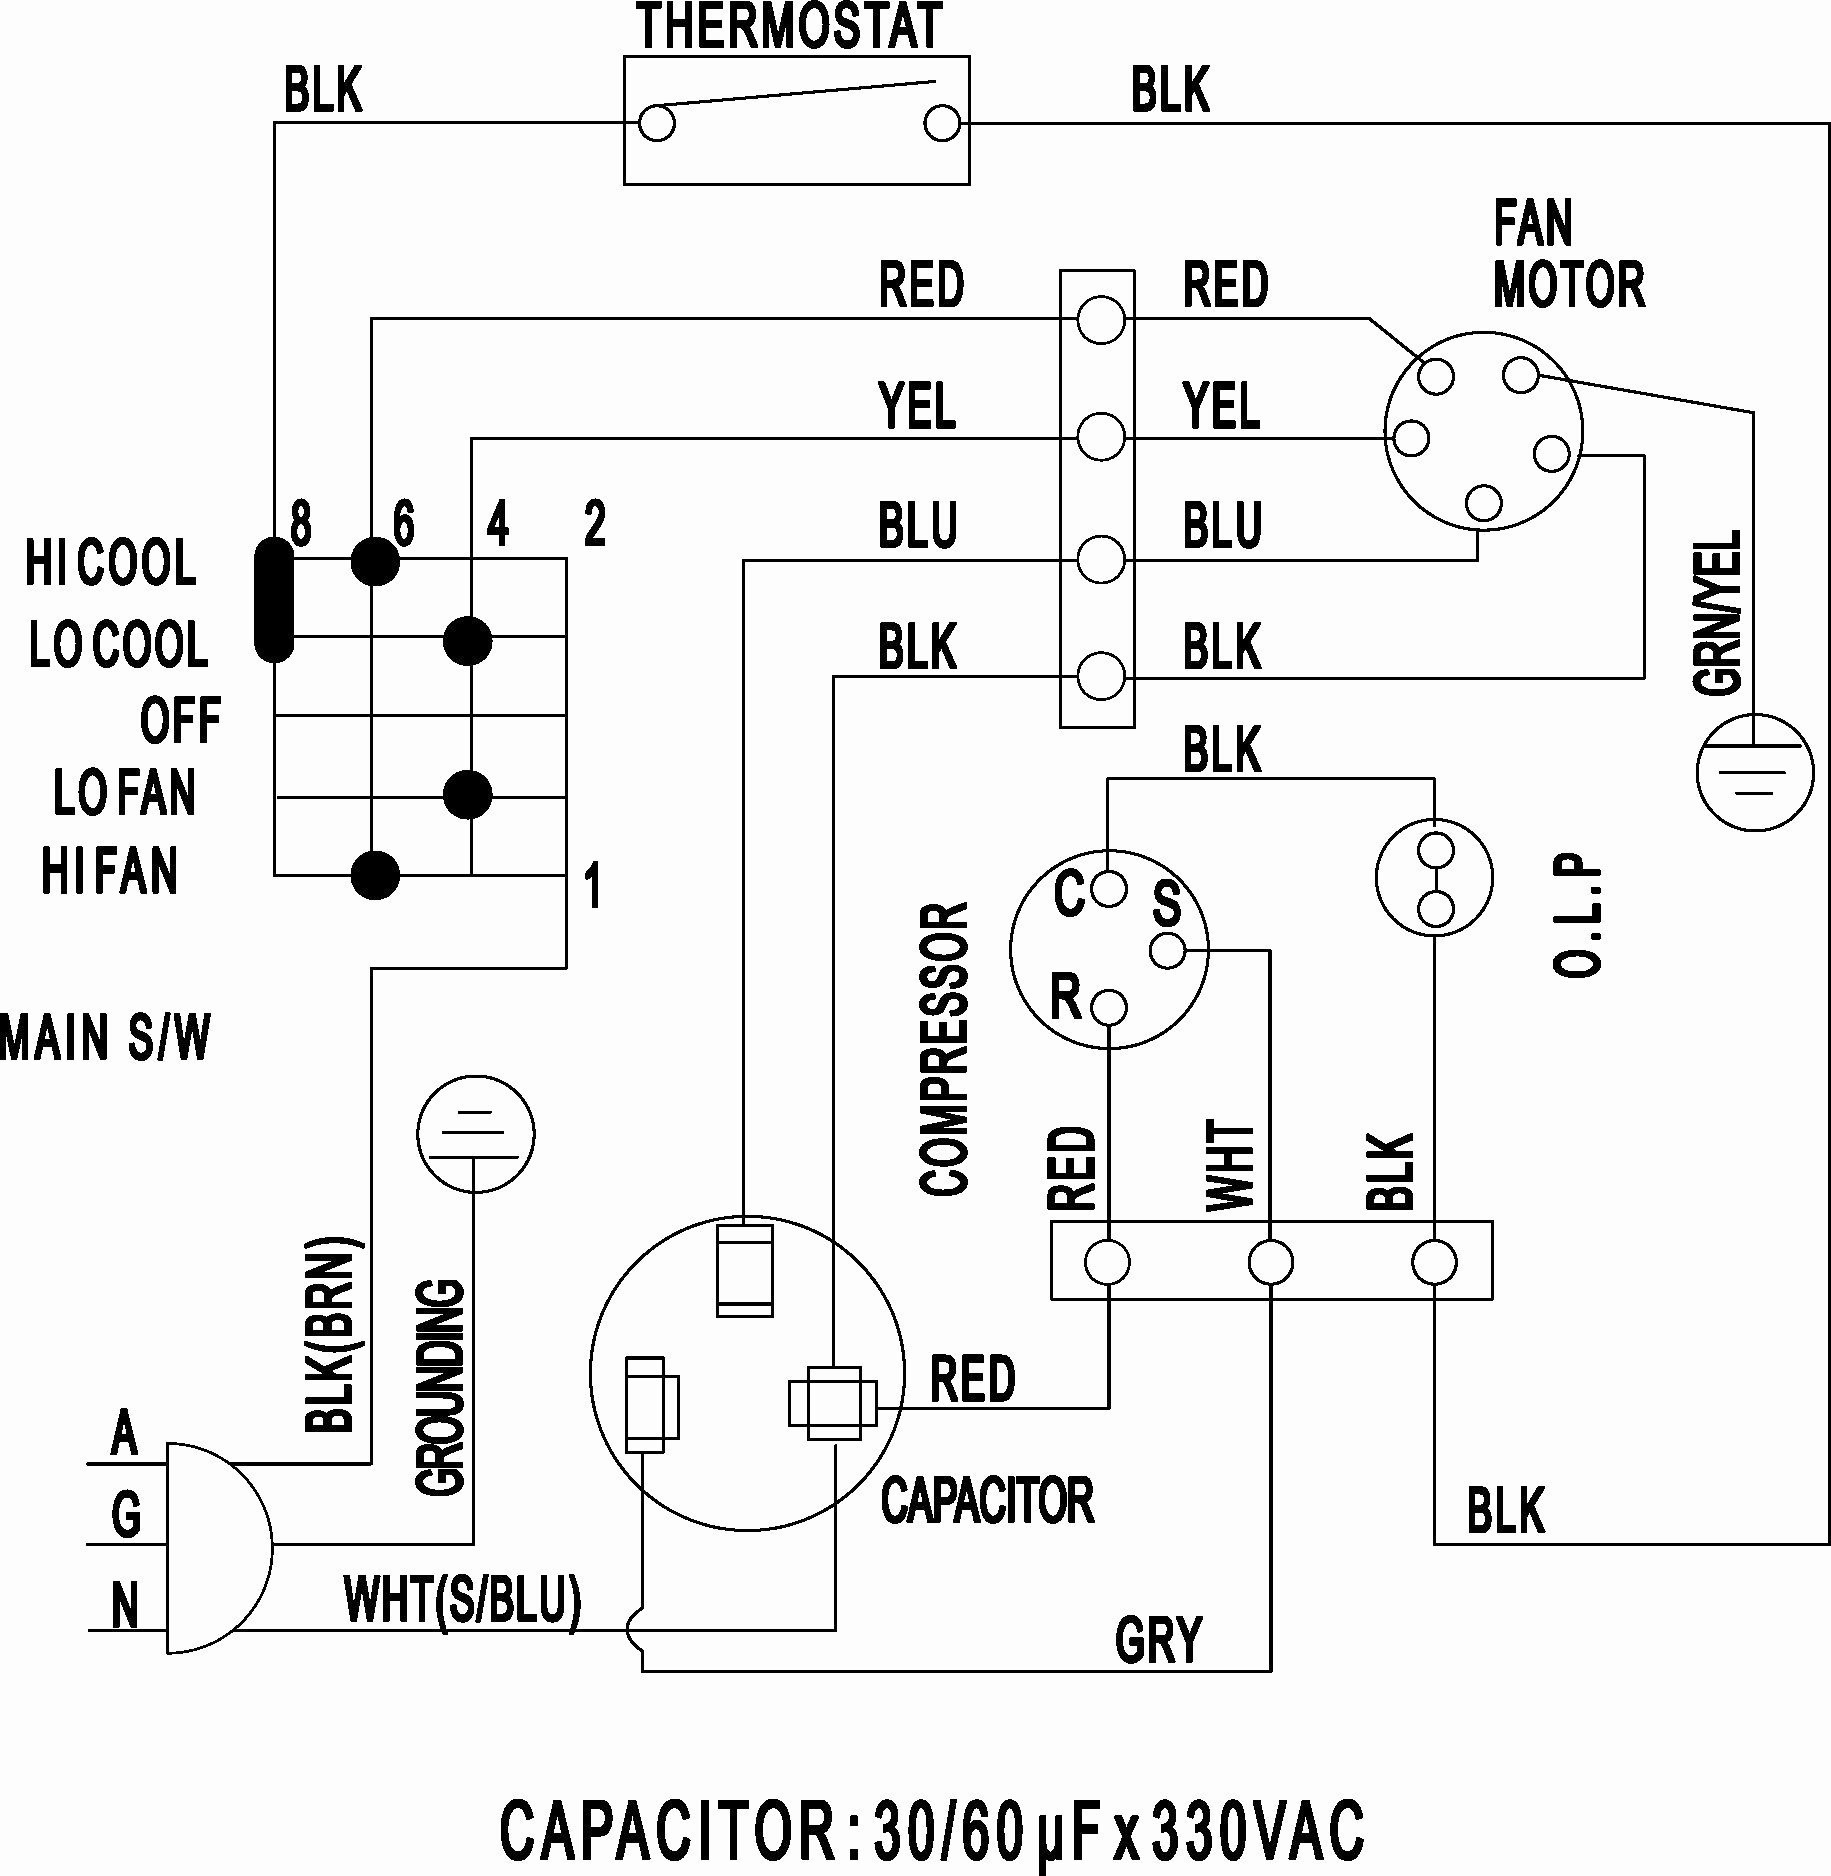 hight resolution of inverter air conditioner wiring diagram databasesplit air conditioner wiring diagram sample